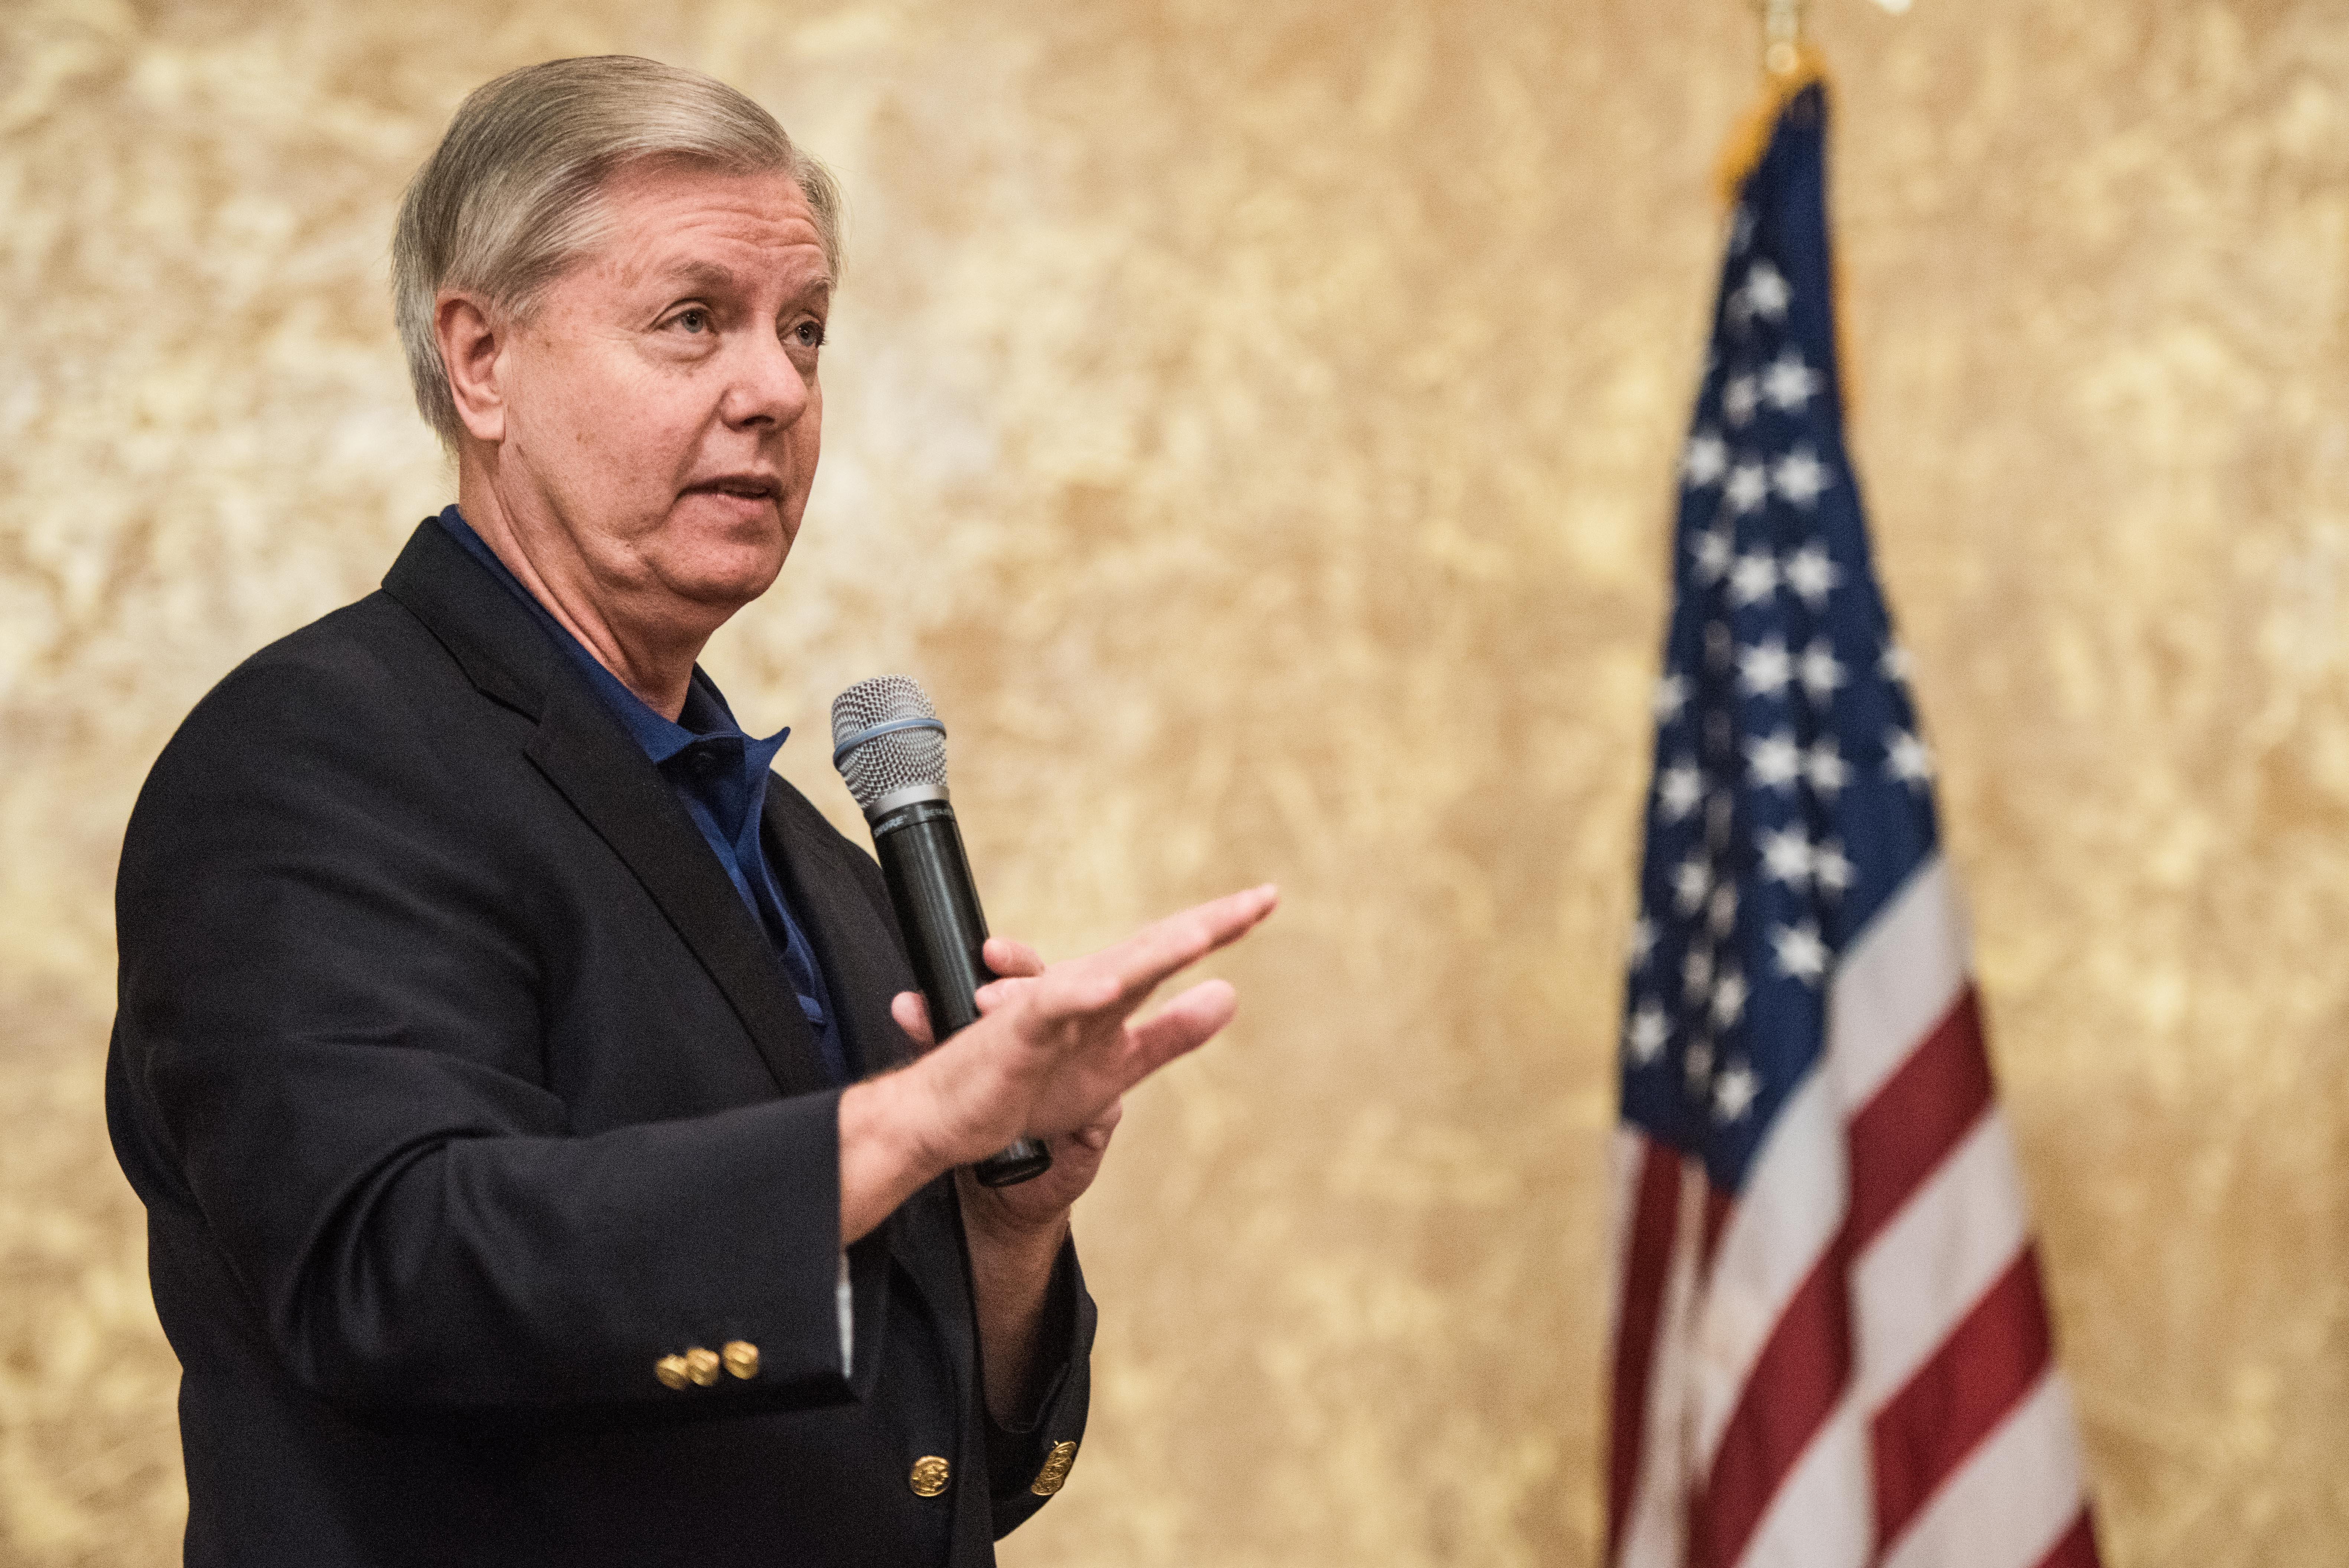 Sen. Lindsey Graham addresses constituents during a town hall meeting March 25, 2017 in Columbia, South Carolina.